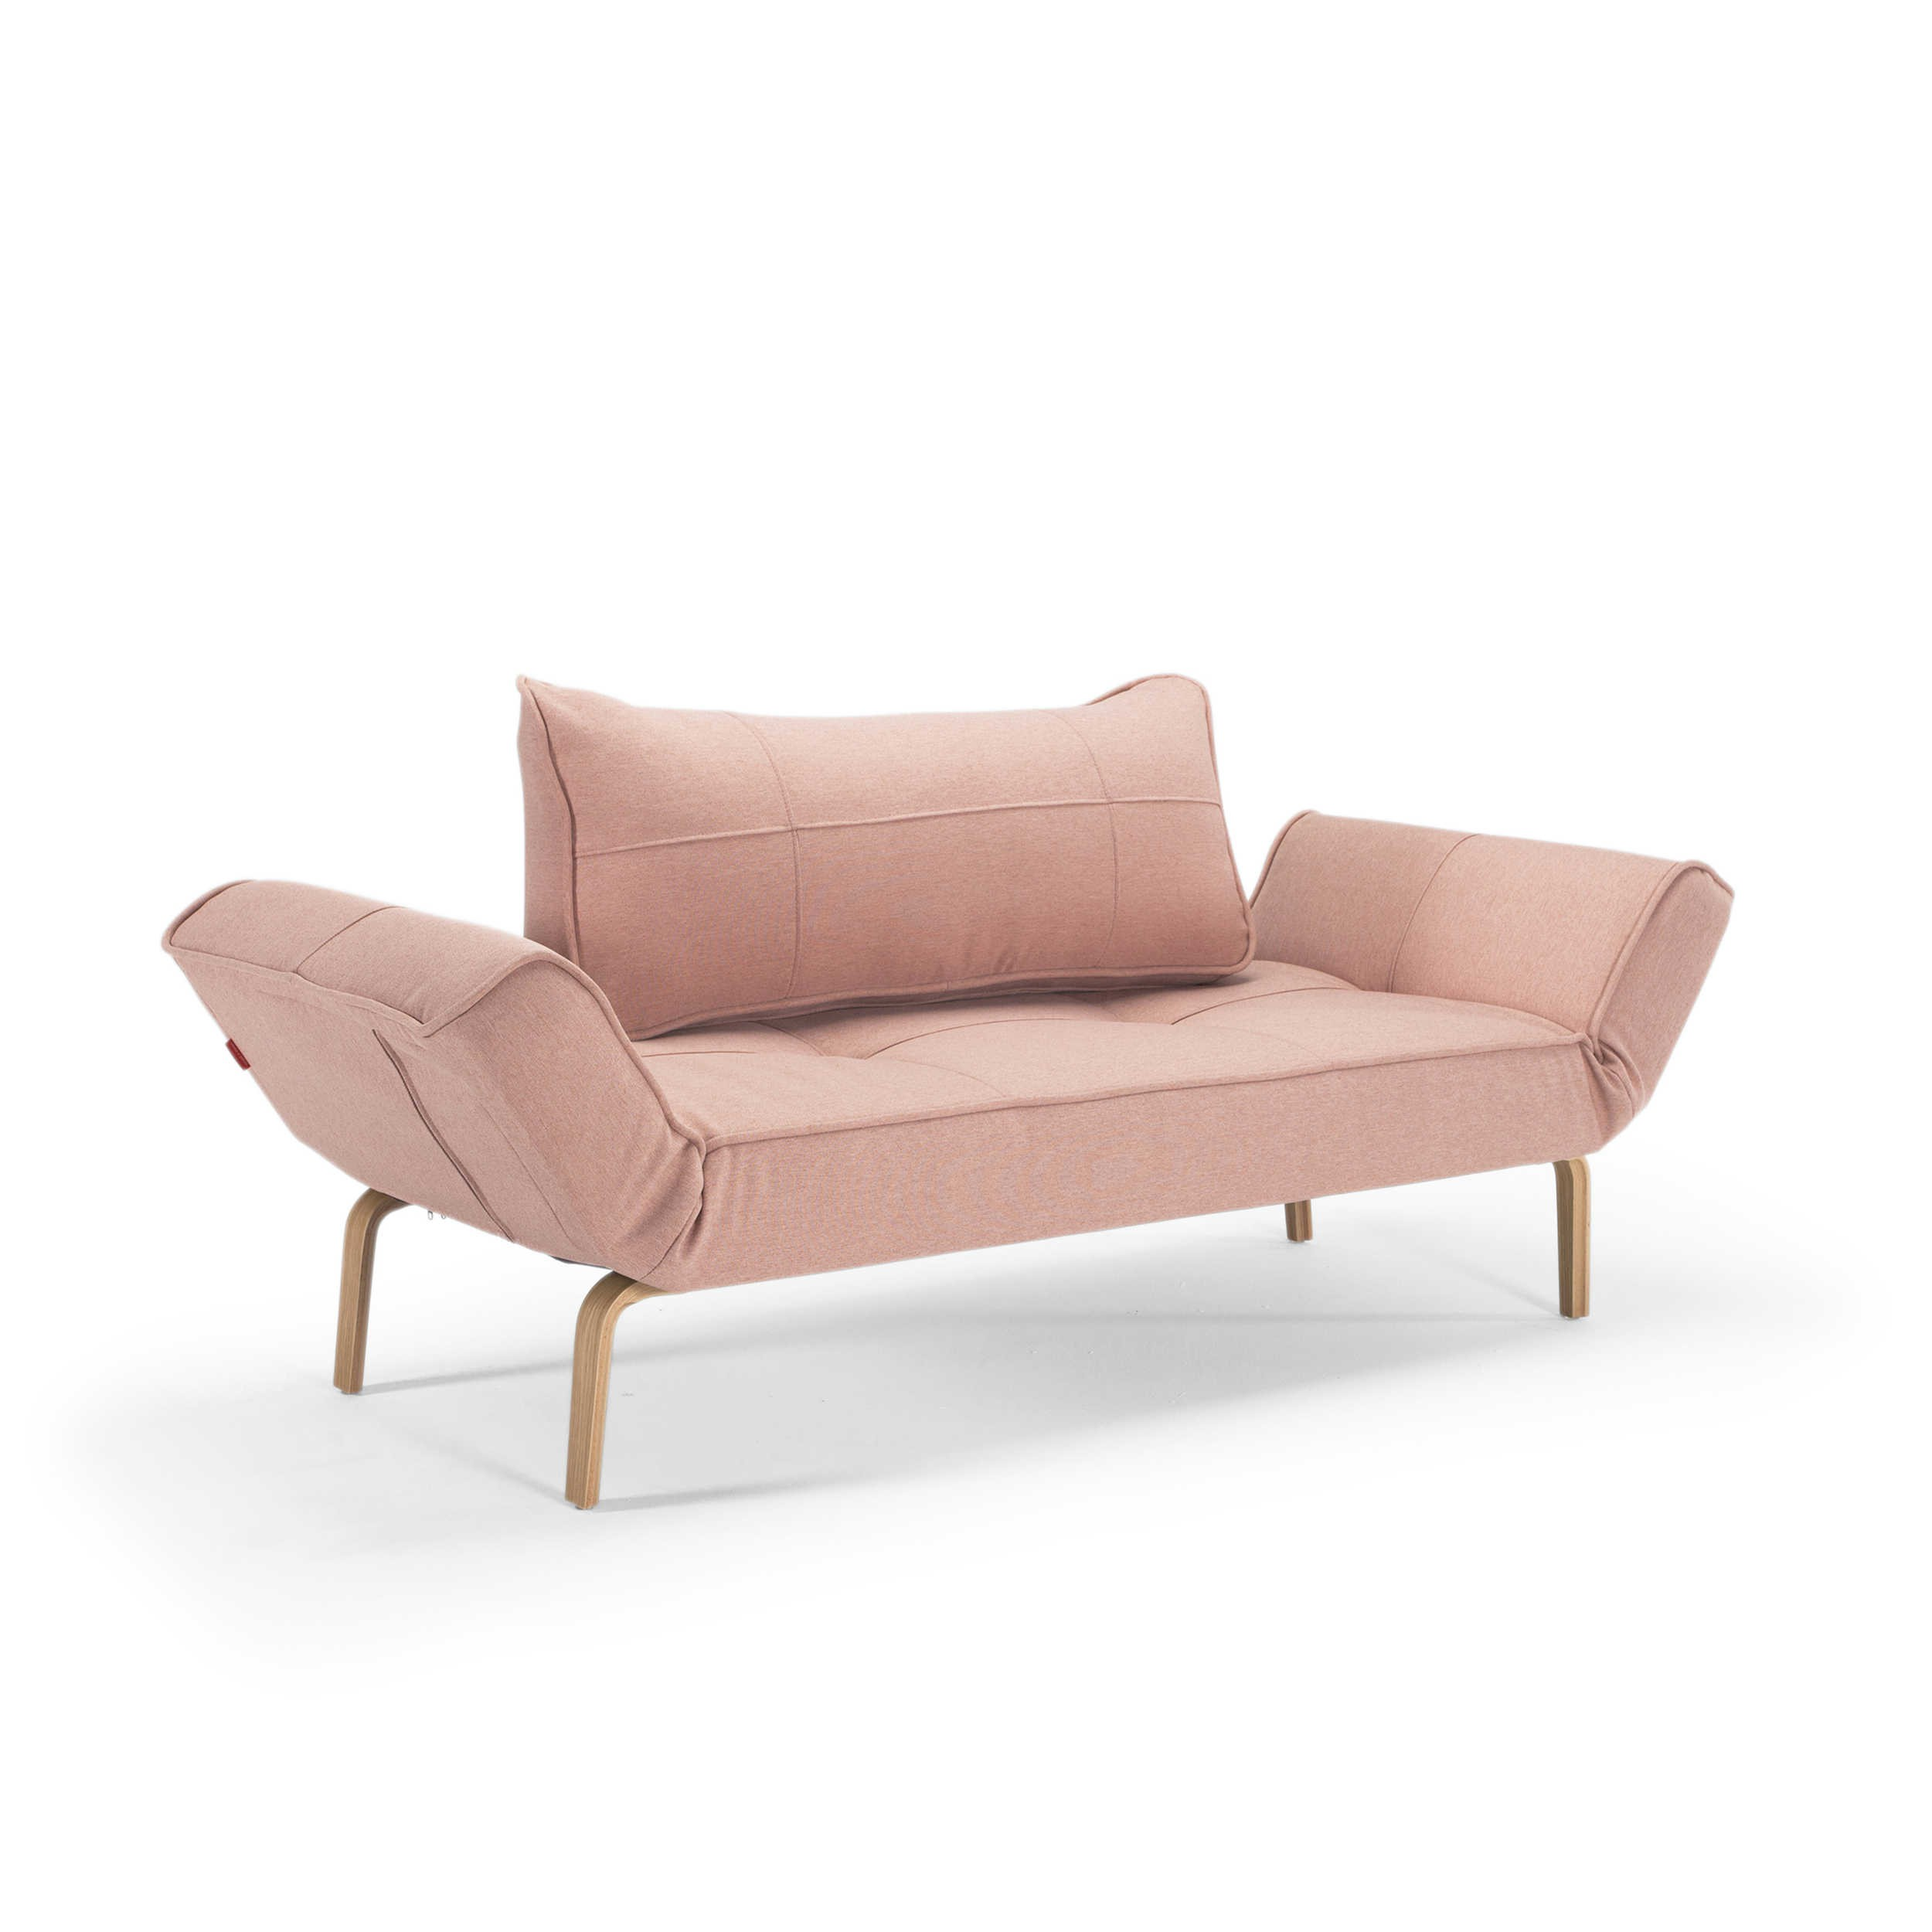 Innovation schlafsofa zeal bow rosa stoff online kaufen for Schlafsofa zeal